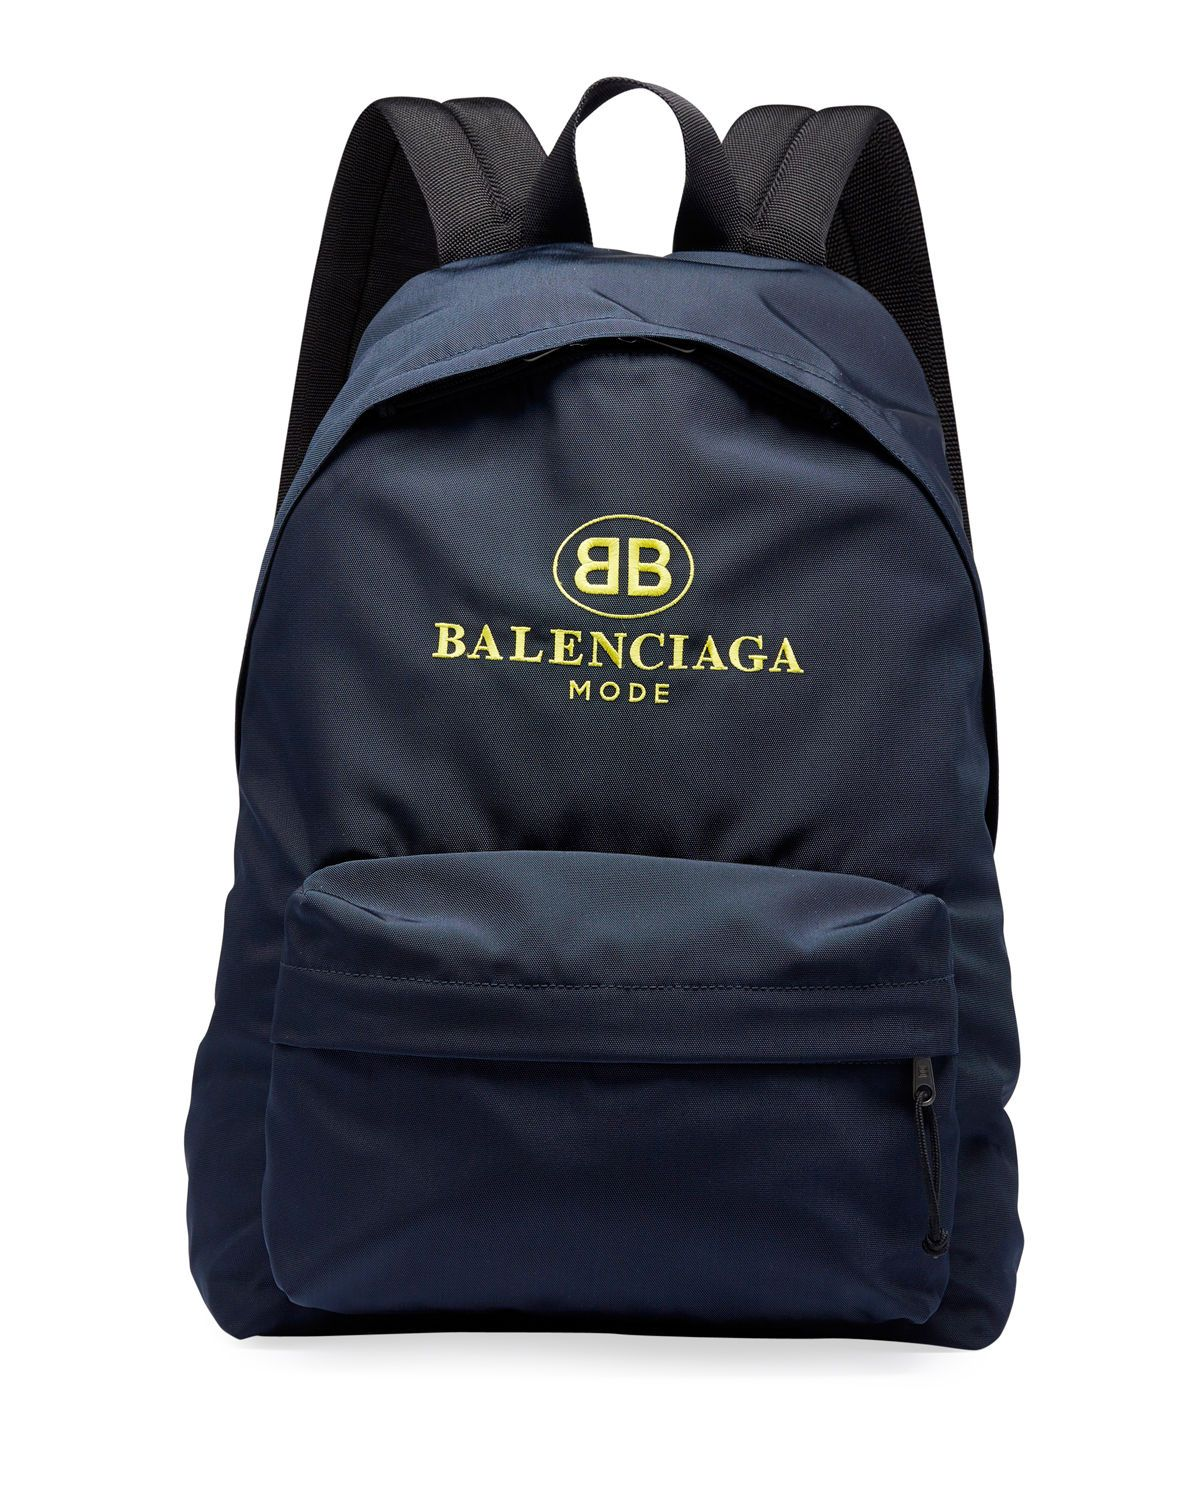 af67cc600b36 BALENCIAGA MEN S DOUBLE-B LOGO BACKPACK.  balenciaga  bags  canvas  nylon   backpacks  polyester